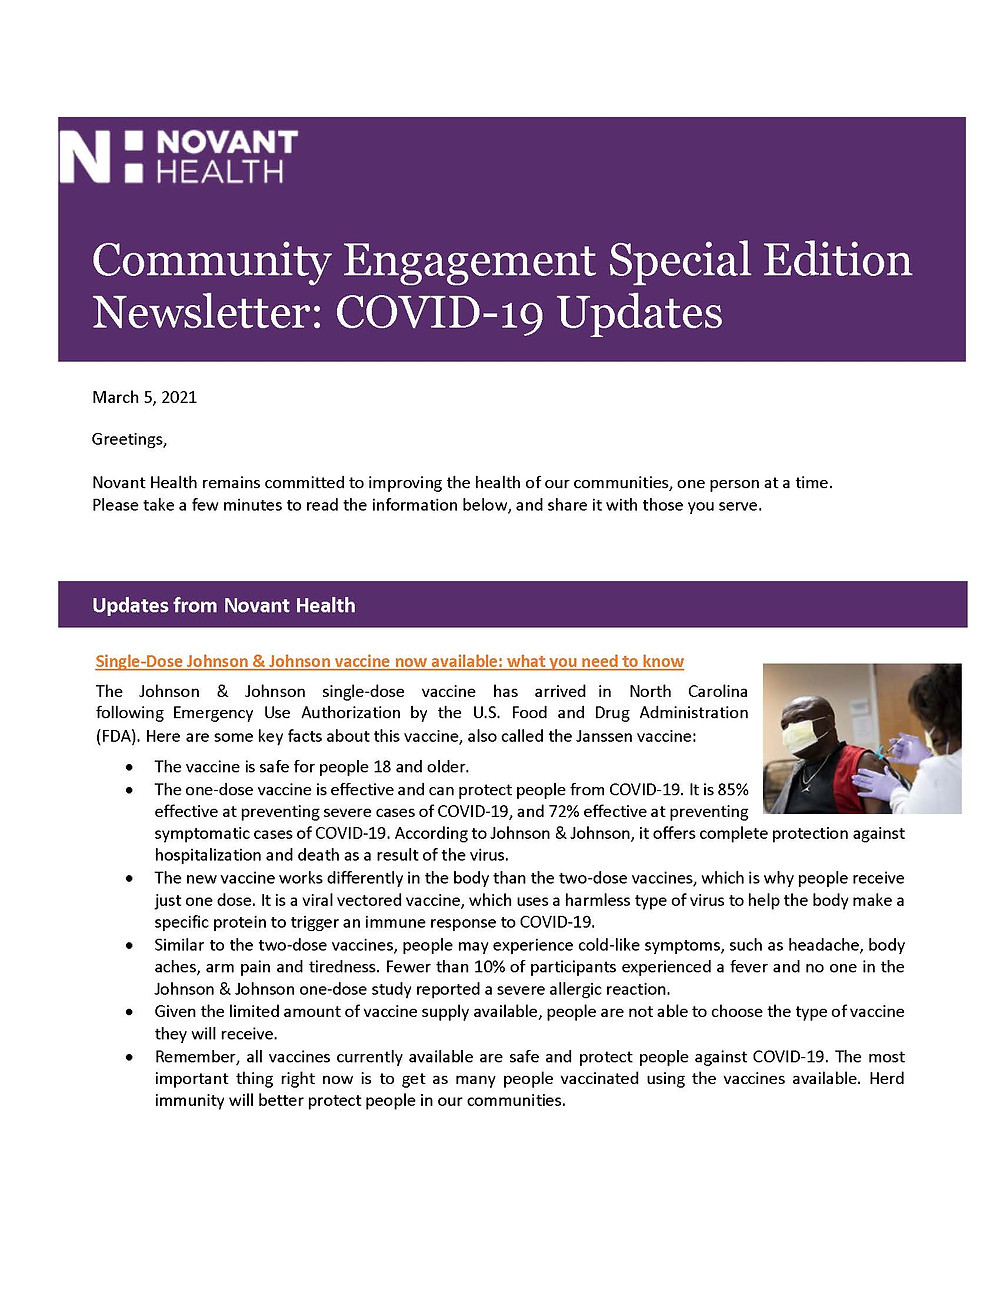 Novant Health Community Engagement Covid-19 Updates